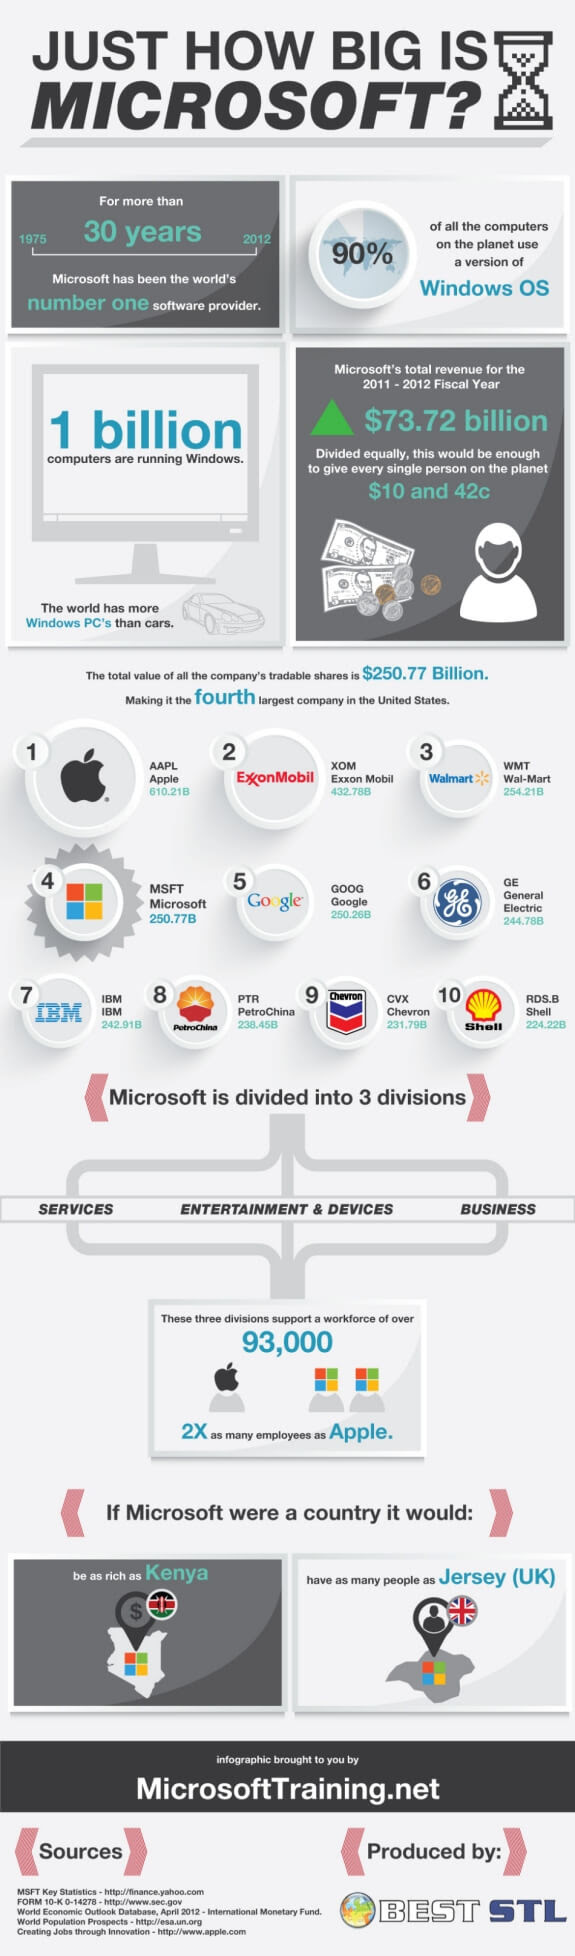 Just How Big Is Microsoft?